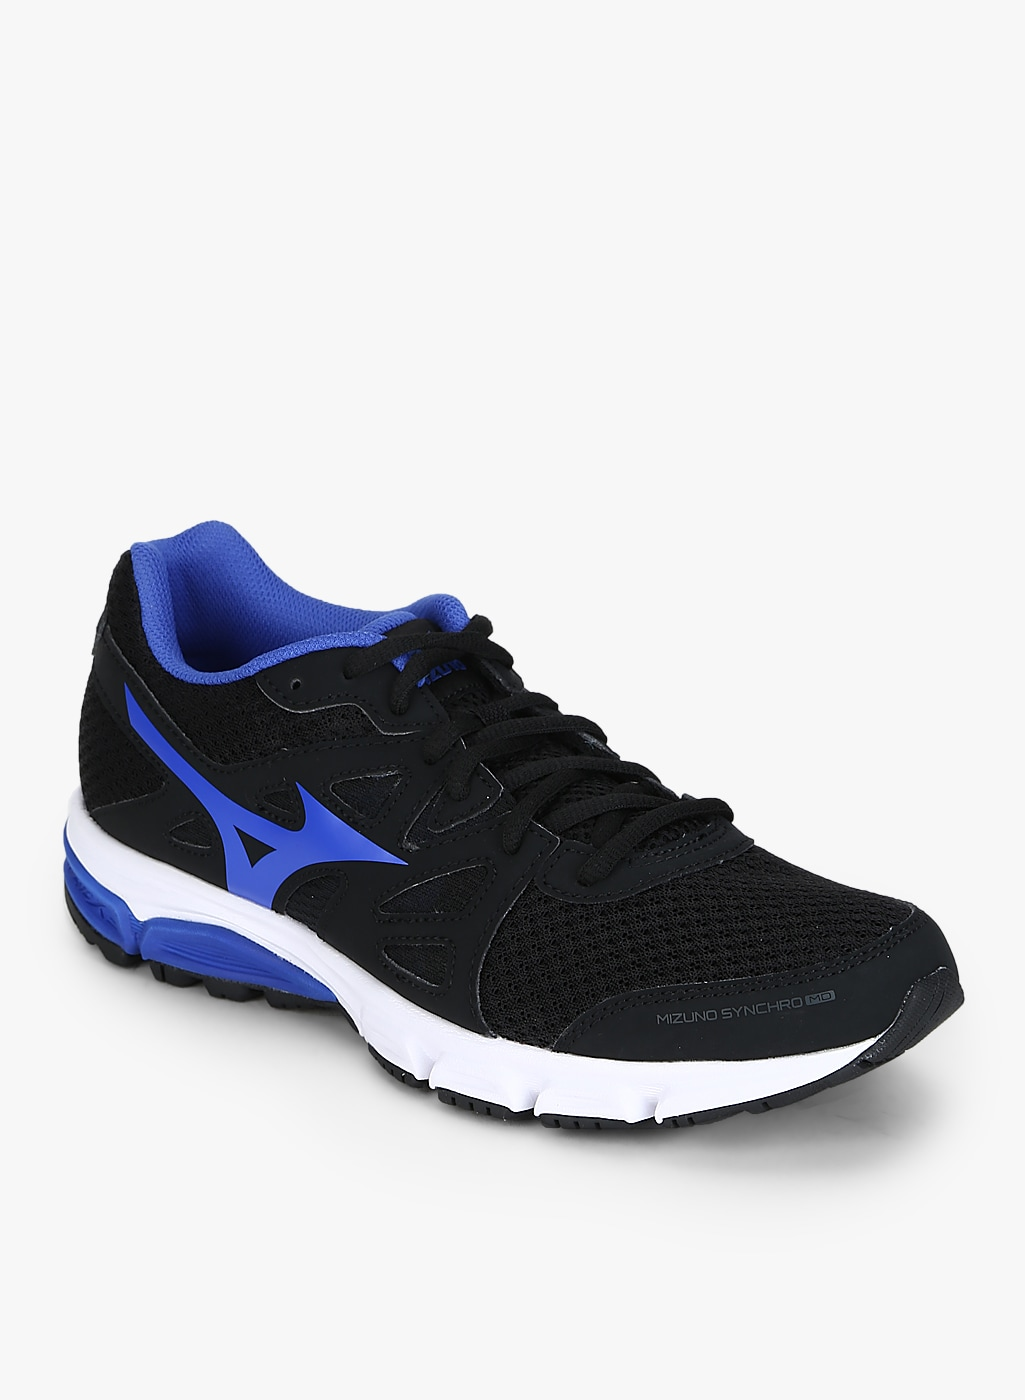 3d0516a7ebfa Mizuno Running Shoes - Buy Mizuno Running Shoes online in India